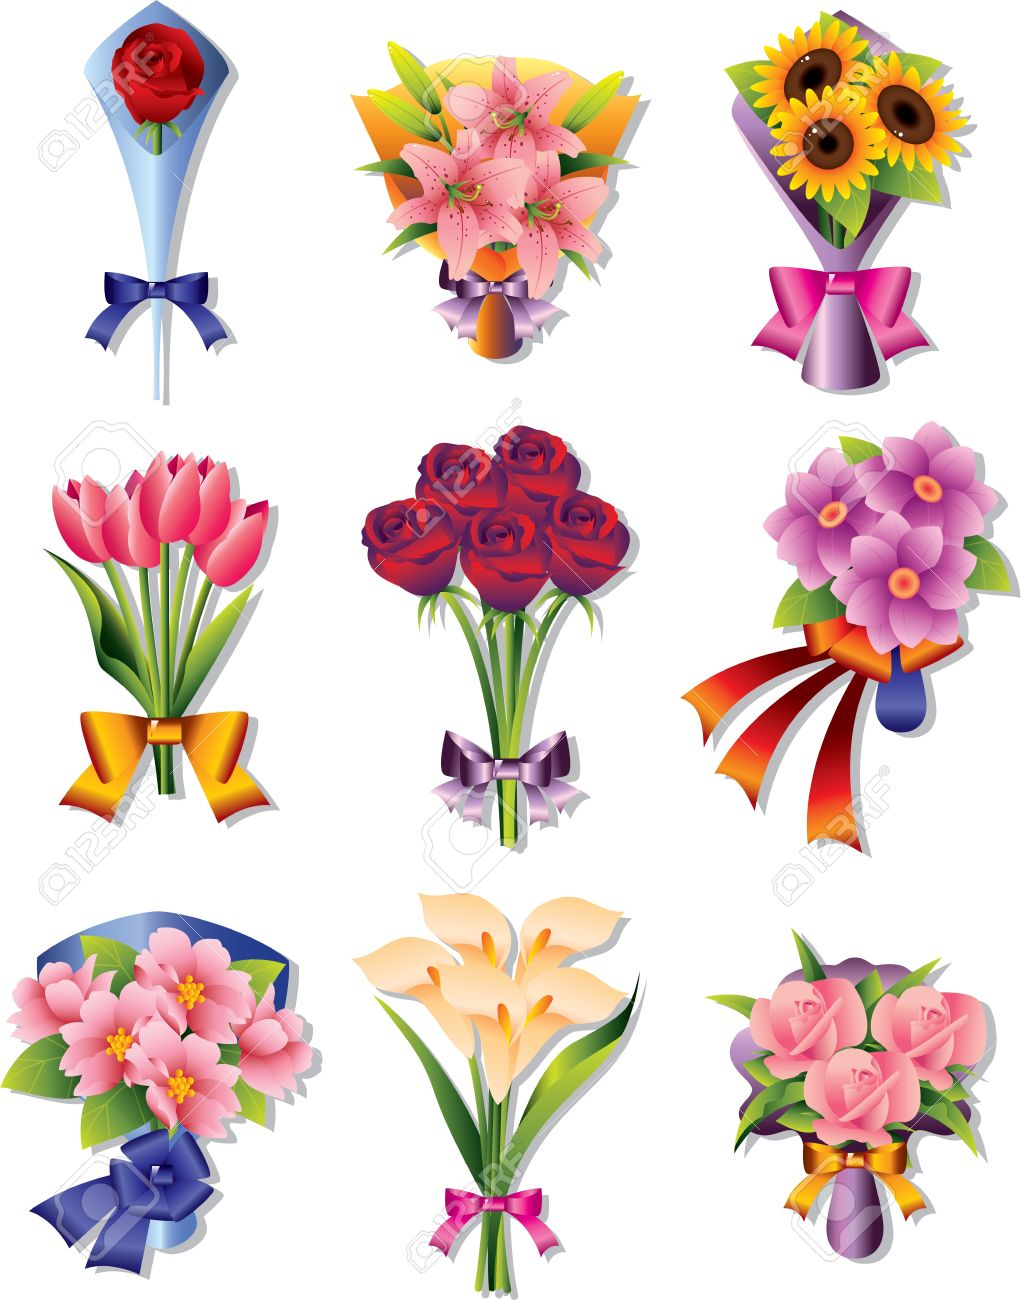 Animated flower bouquet clipart.